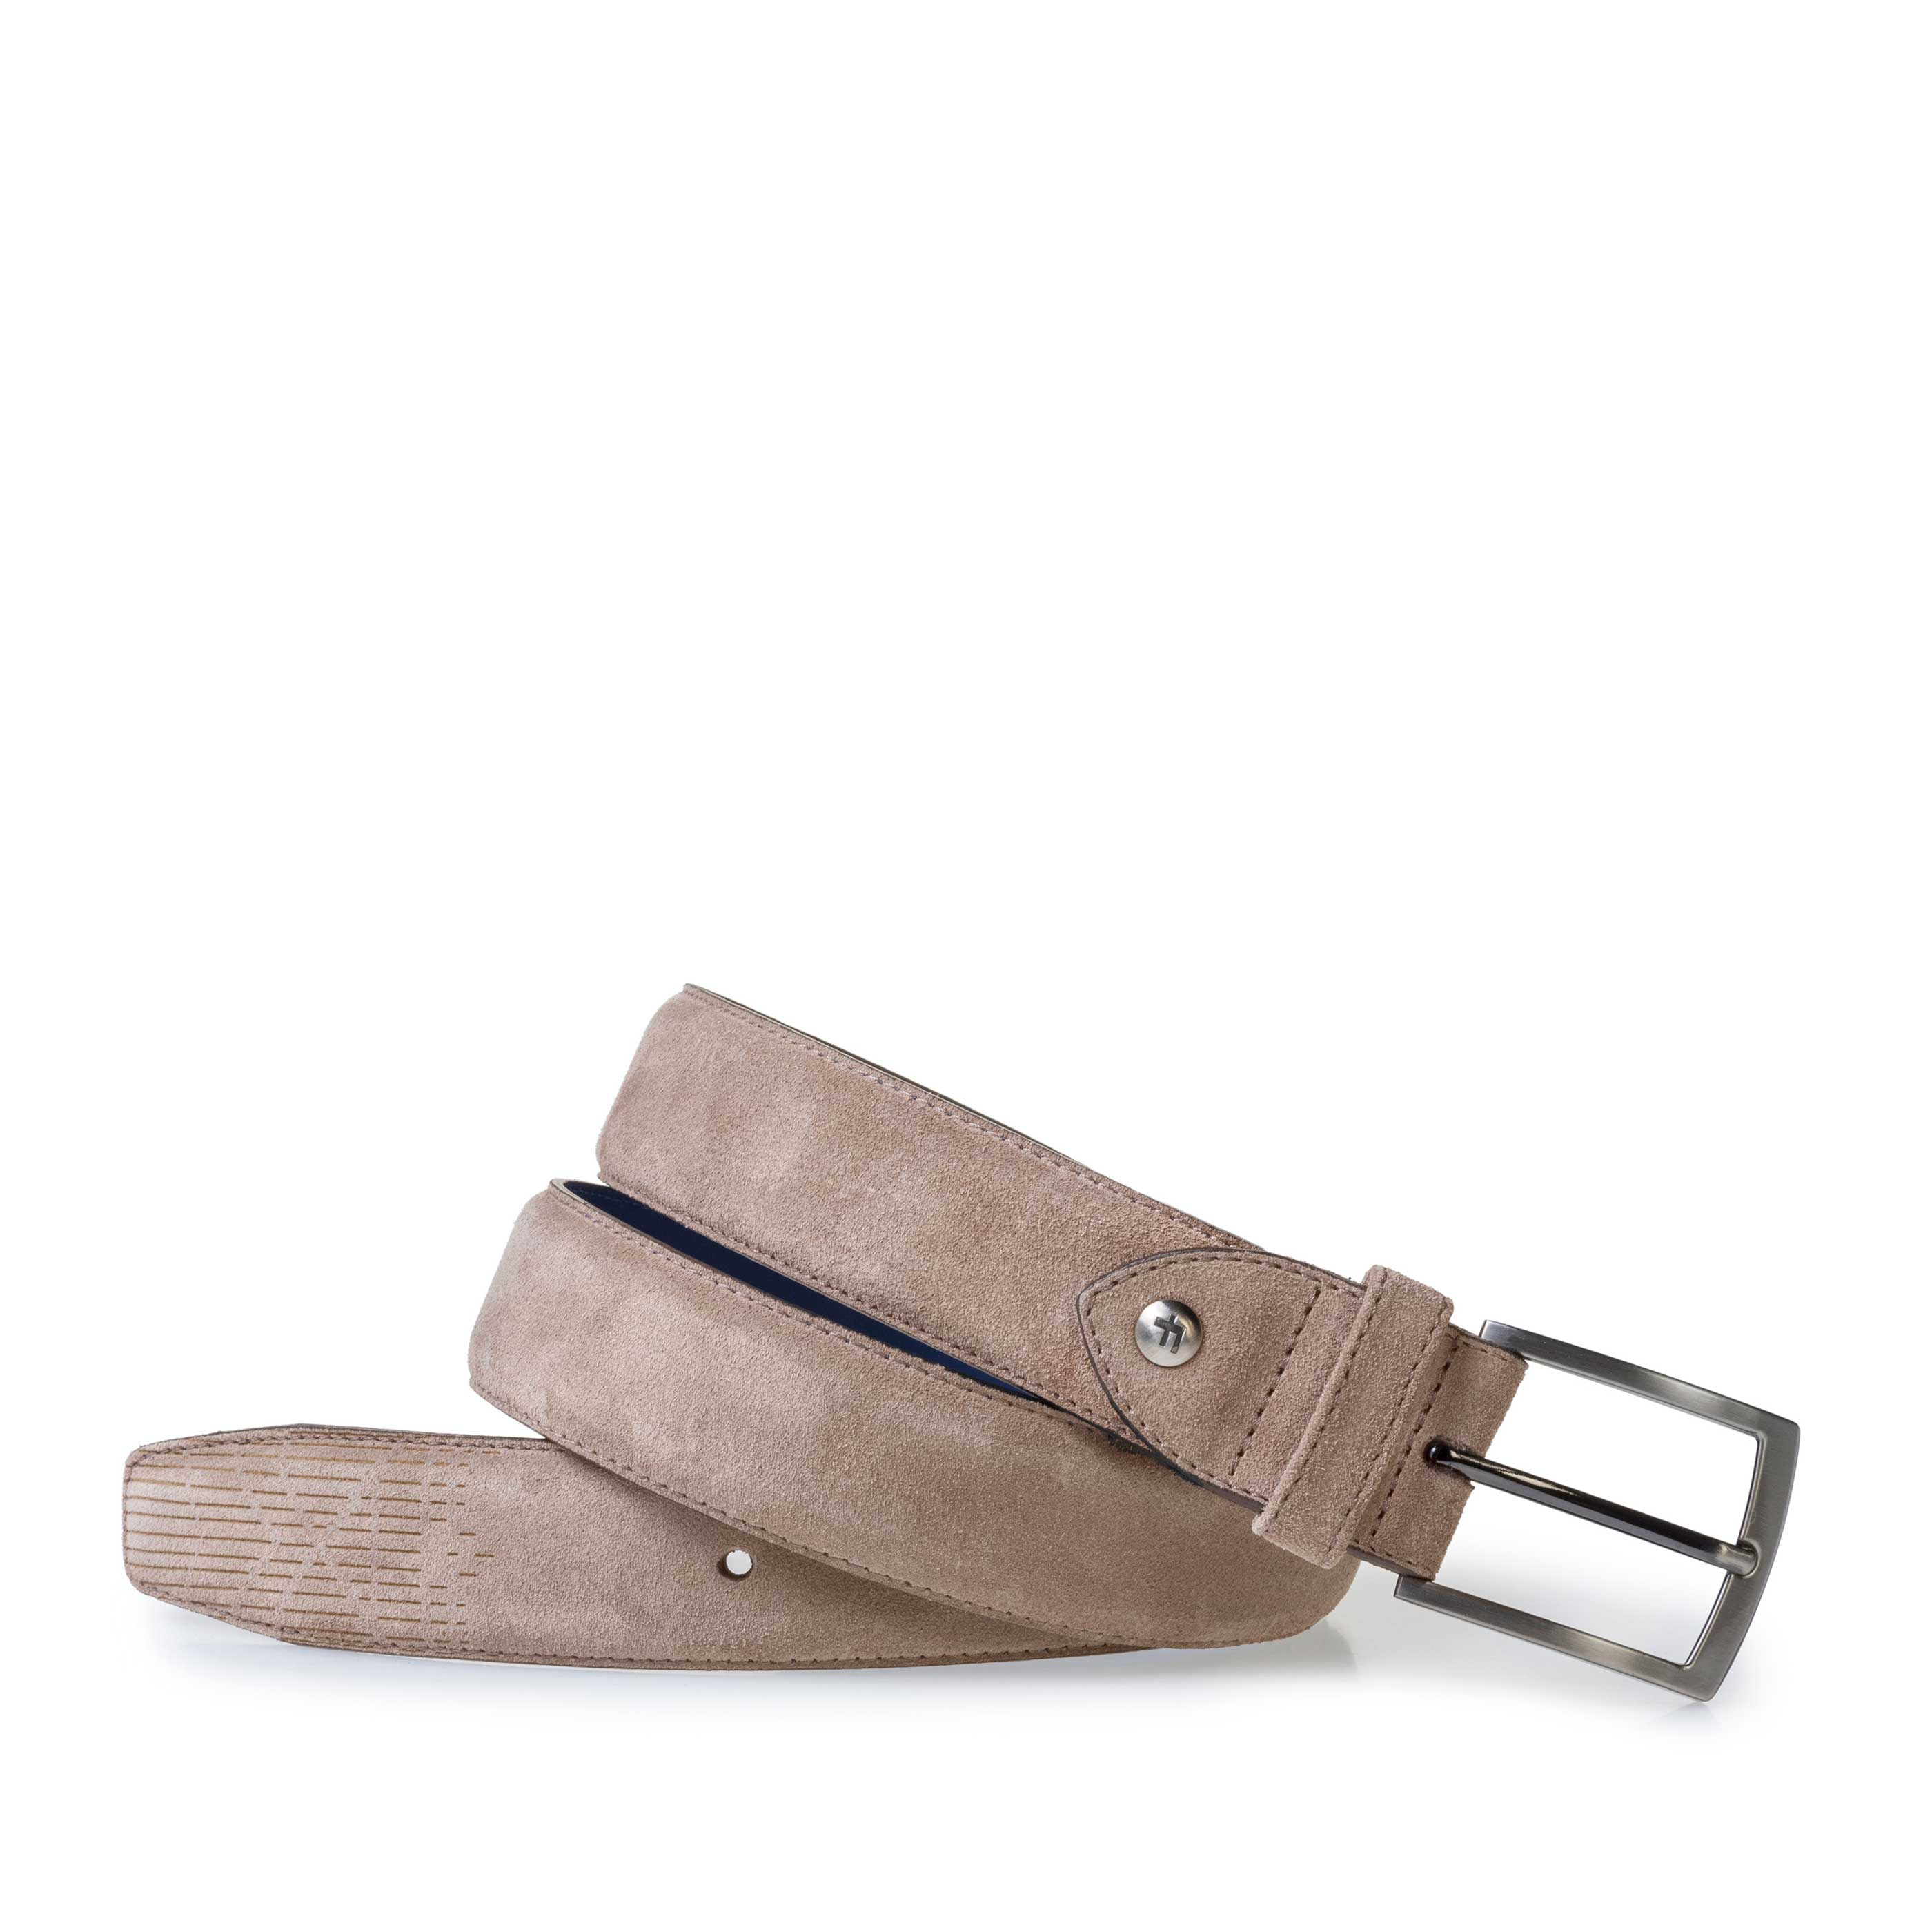 75214/03 - Beige suede leather belt with laser print